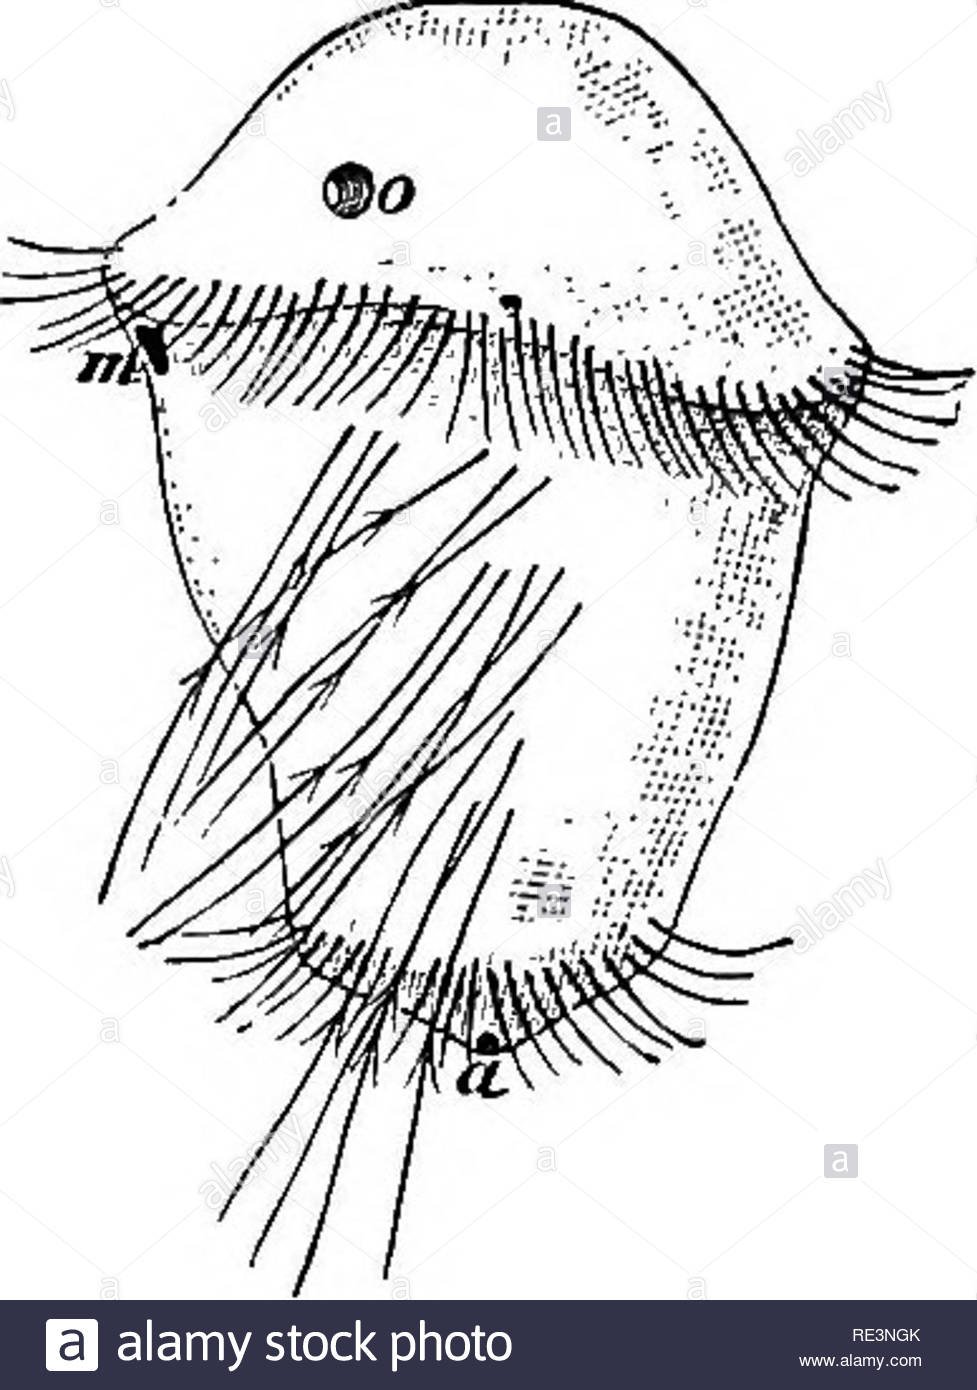 text book of zoology zoology fig 135 fig 134 diagram of the reproductive apparatus of an earth worm the animal is dissected from the mid dorsal line and spread out 814 8th to 14th bristle hearing seg ments 0 ovary od oviduct sb vesicula seminalis sg spermatheca t testis vd vas deferens vd its outer end ce receptaculum ovorum the transverse hnes represent the septaorig fig 135 larva of nereis a anus m mouth o eyeafter gotte a ual reproduction occurs in not a few members of both groups in some cases tbere is a simple transverse fission the animal divides RE3NGK